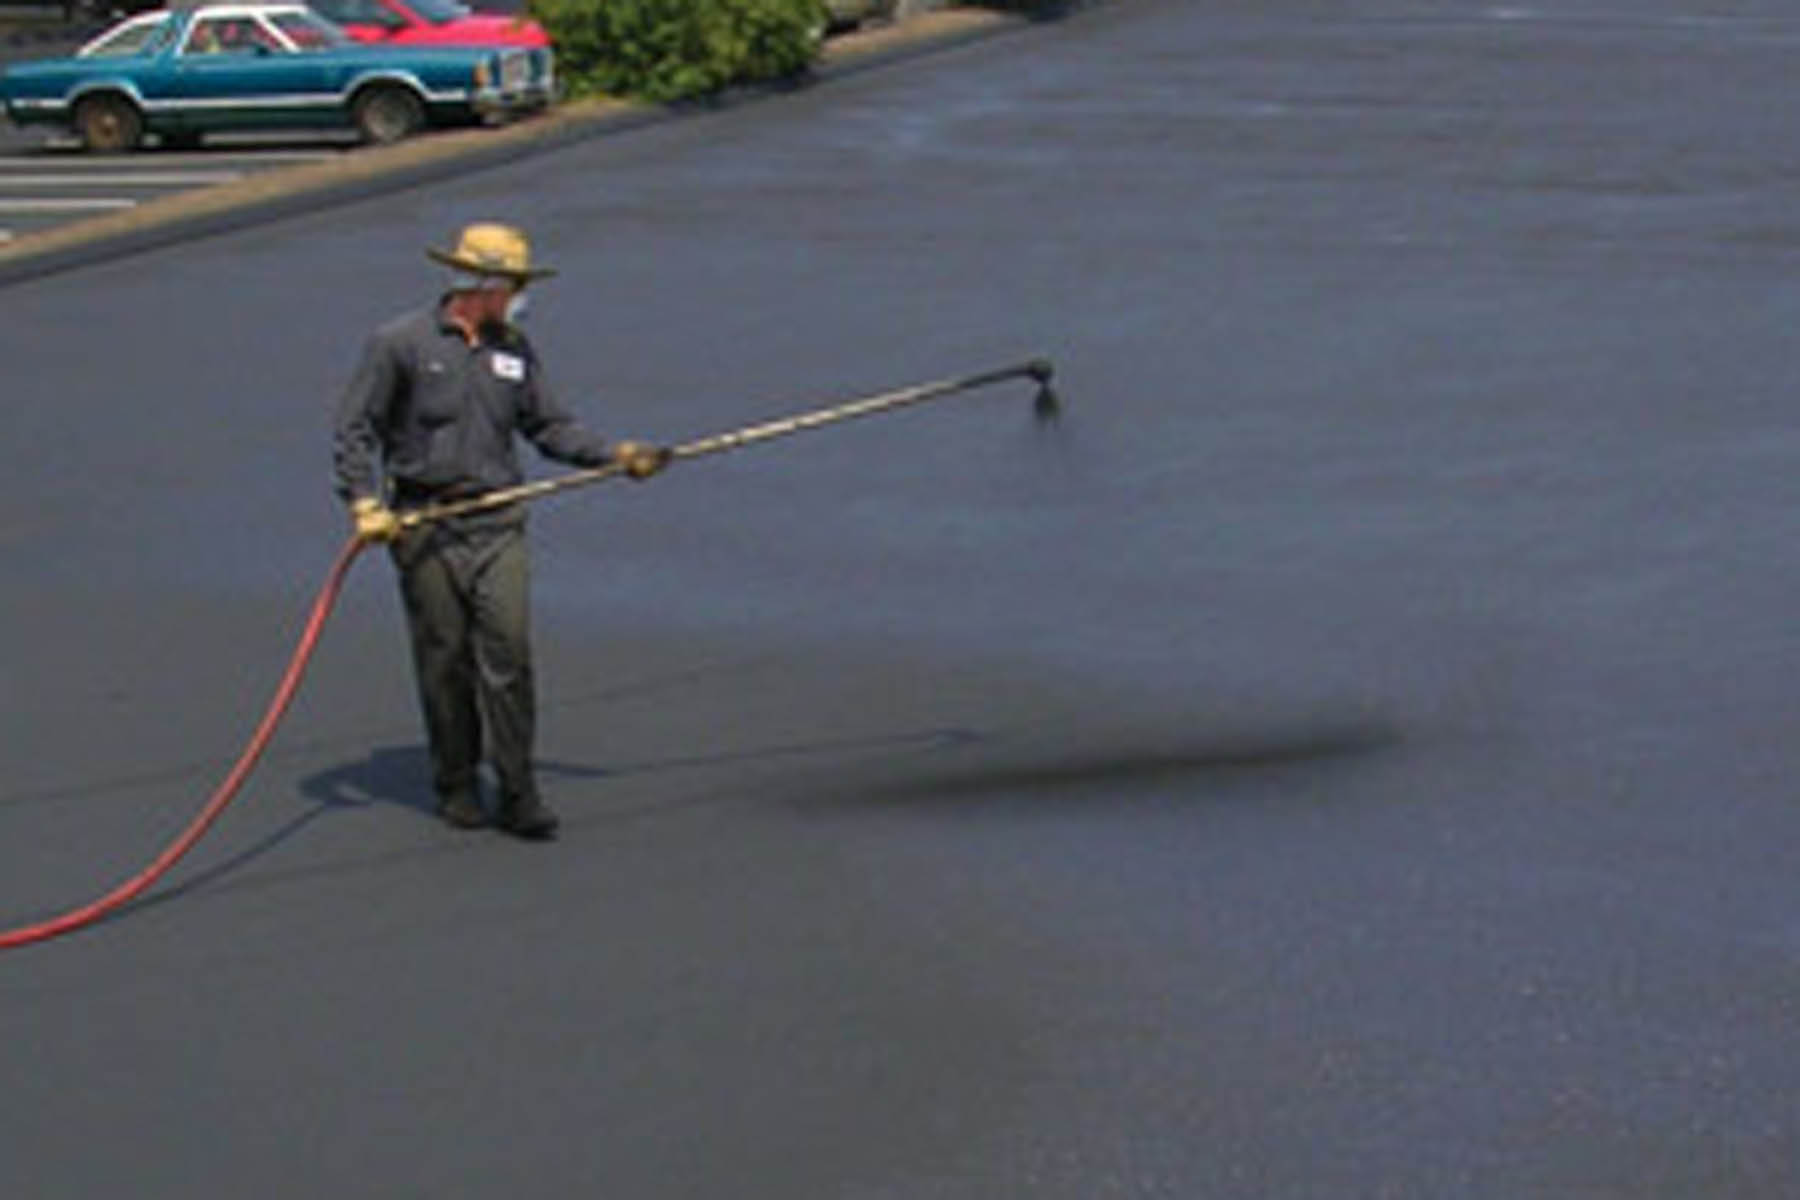 Asphalt Paving, Sealcoating, Line Striping, Crack Sealing, Concrete, Speed Bumps, Infrared Asphalt Repair, Signage, Curb Stops,Street Sweeping, Manhole Covers & Drains, Sport Courts